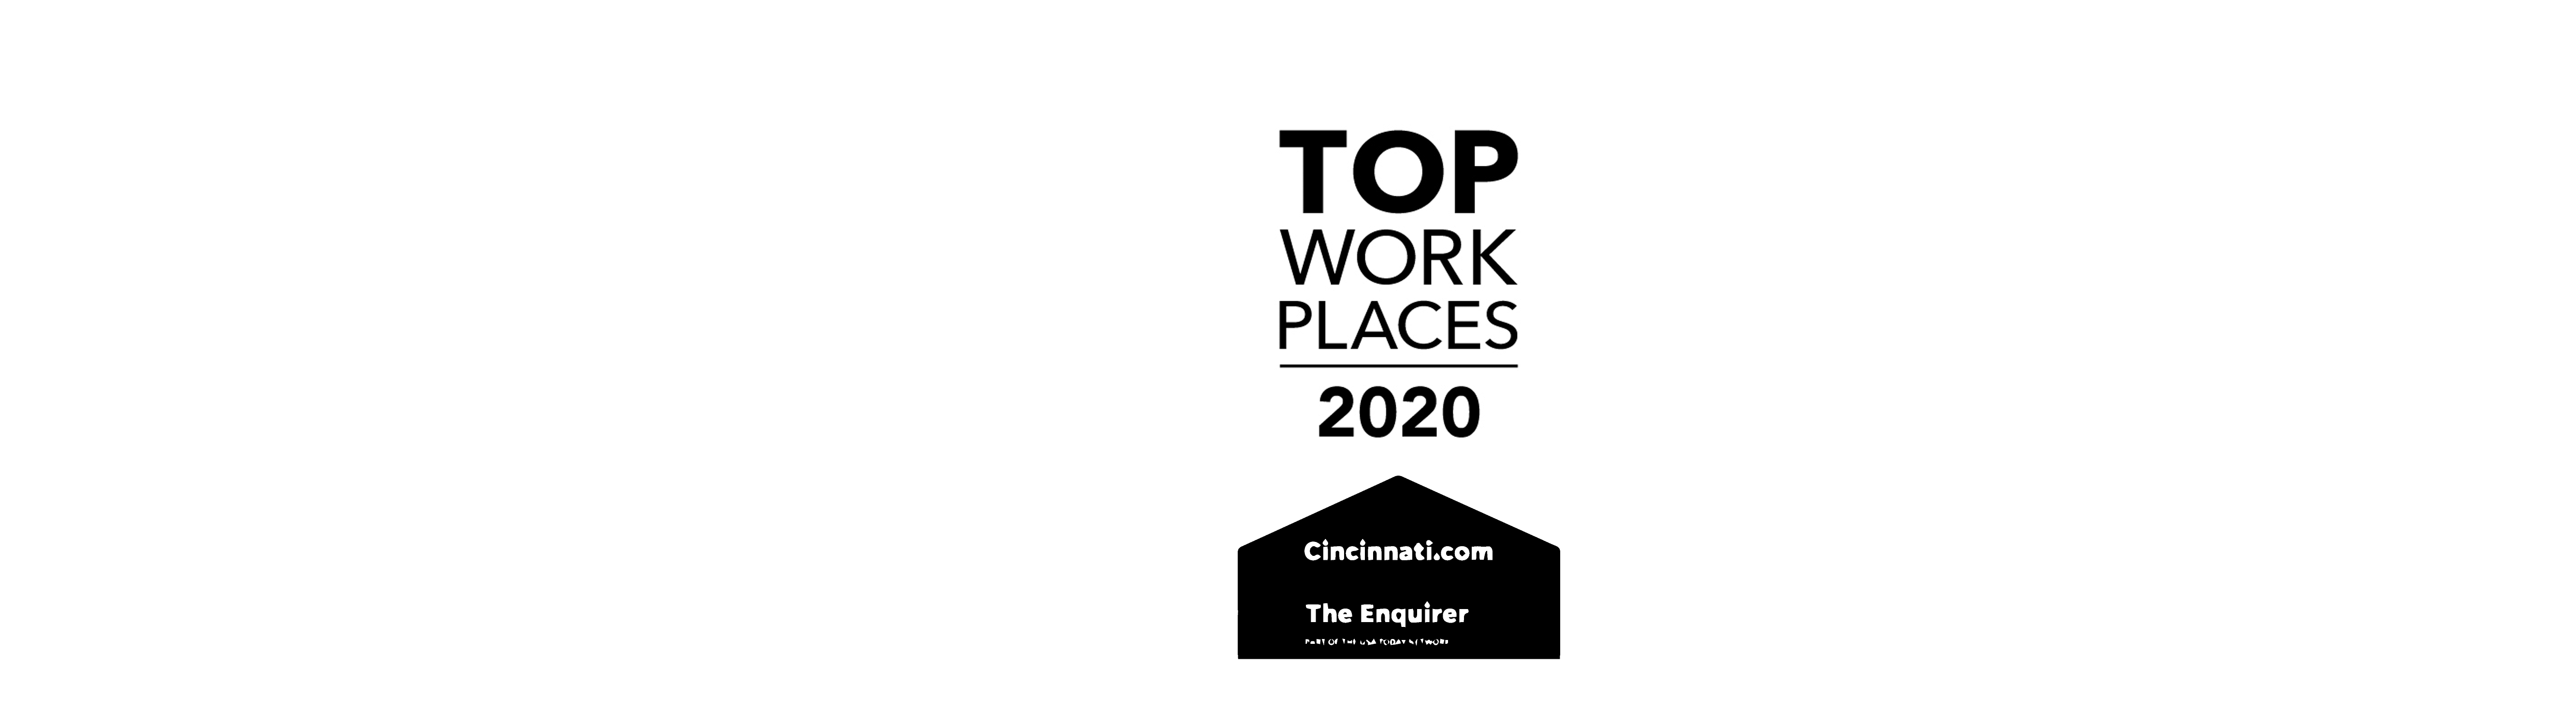 ERS - Top Places to Work 2020